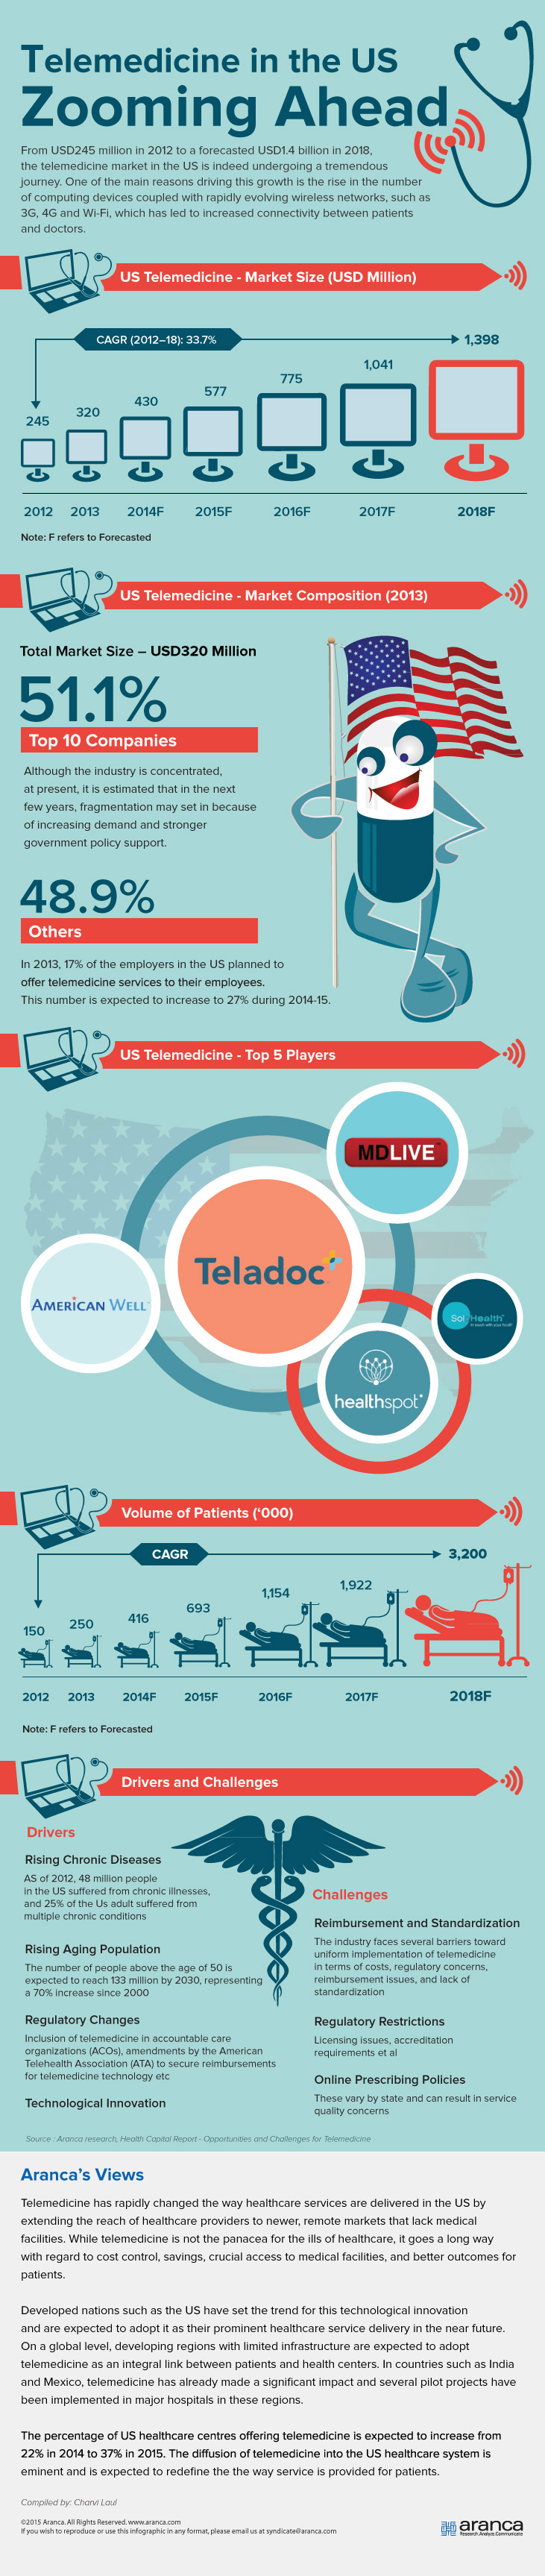 US Telemedicine Market is Set for CAGR of 33.7% in 2018